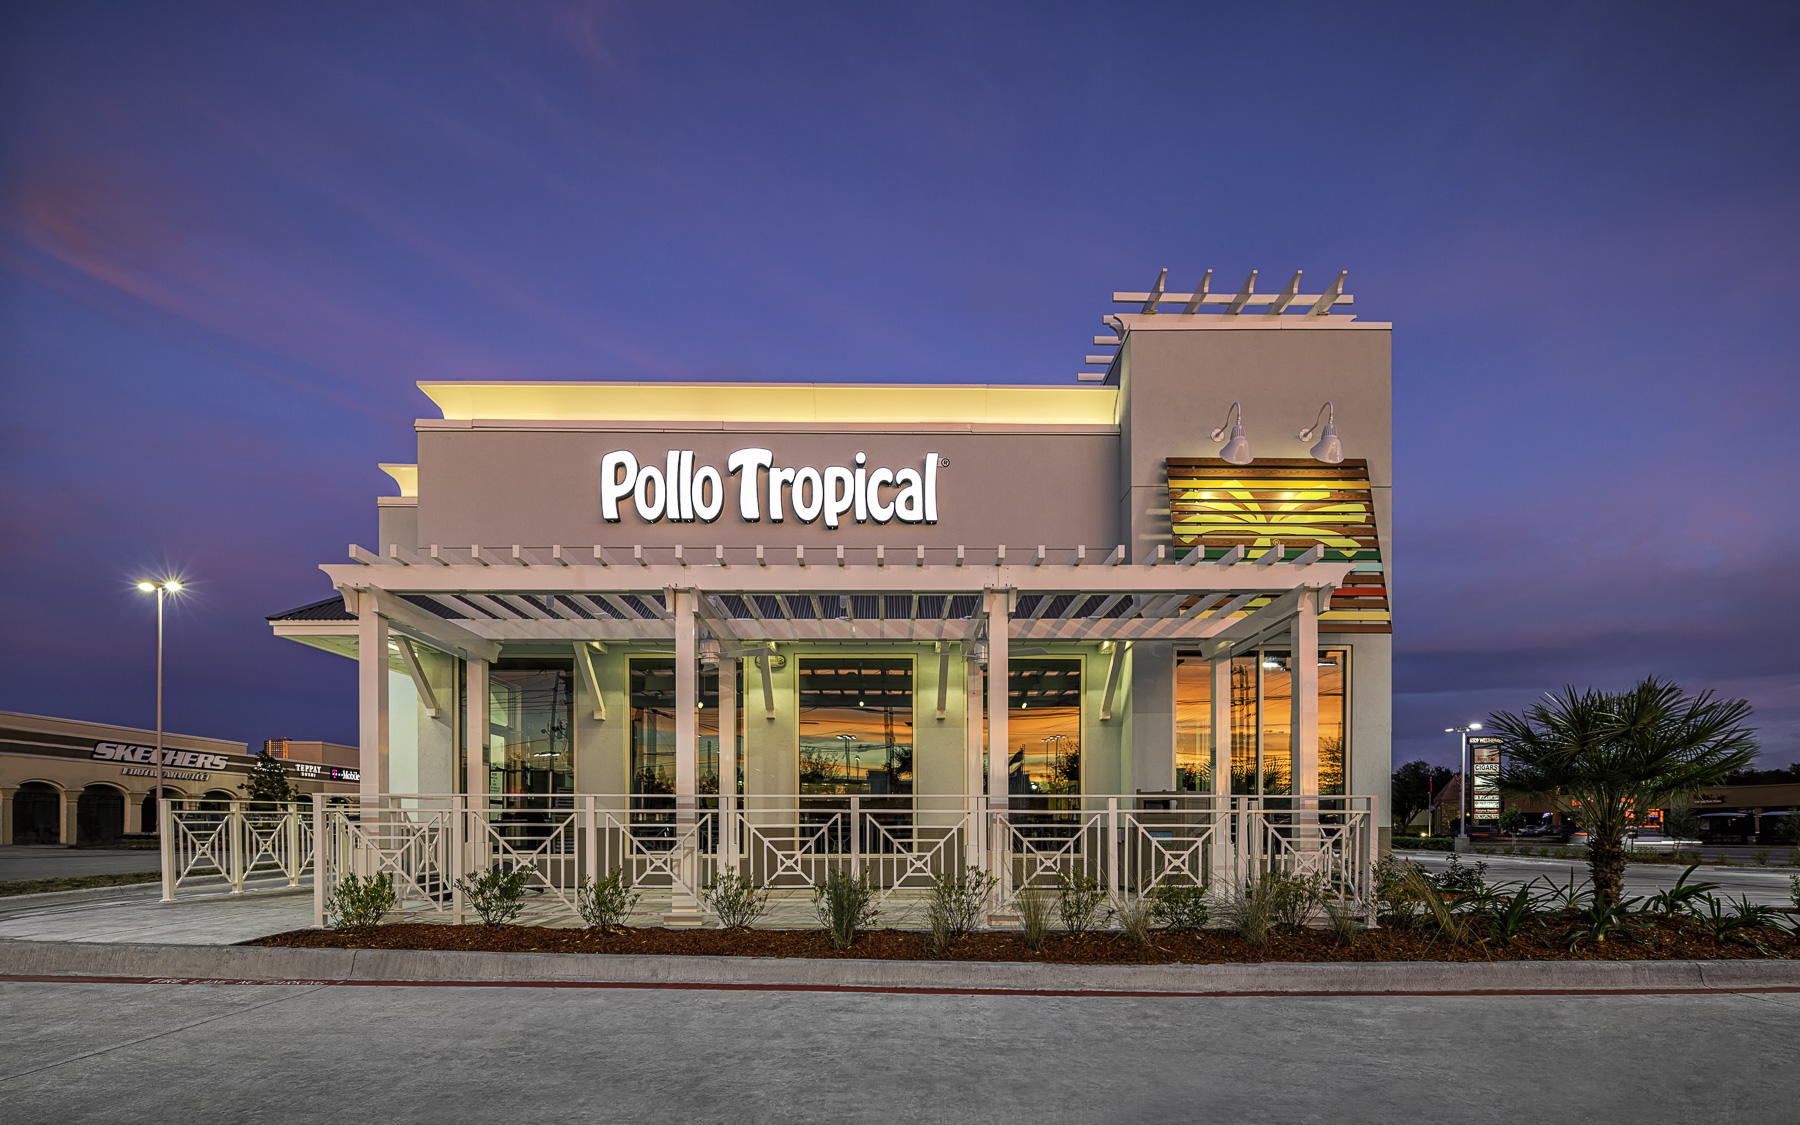 Restaurant Facade pollo tropical restaurant – west facade | mabry campbell photo blog